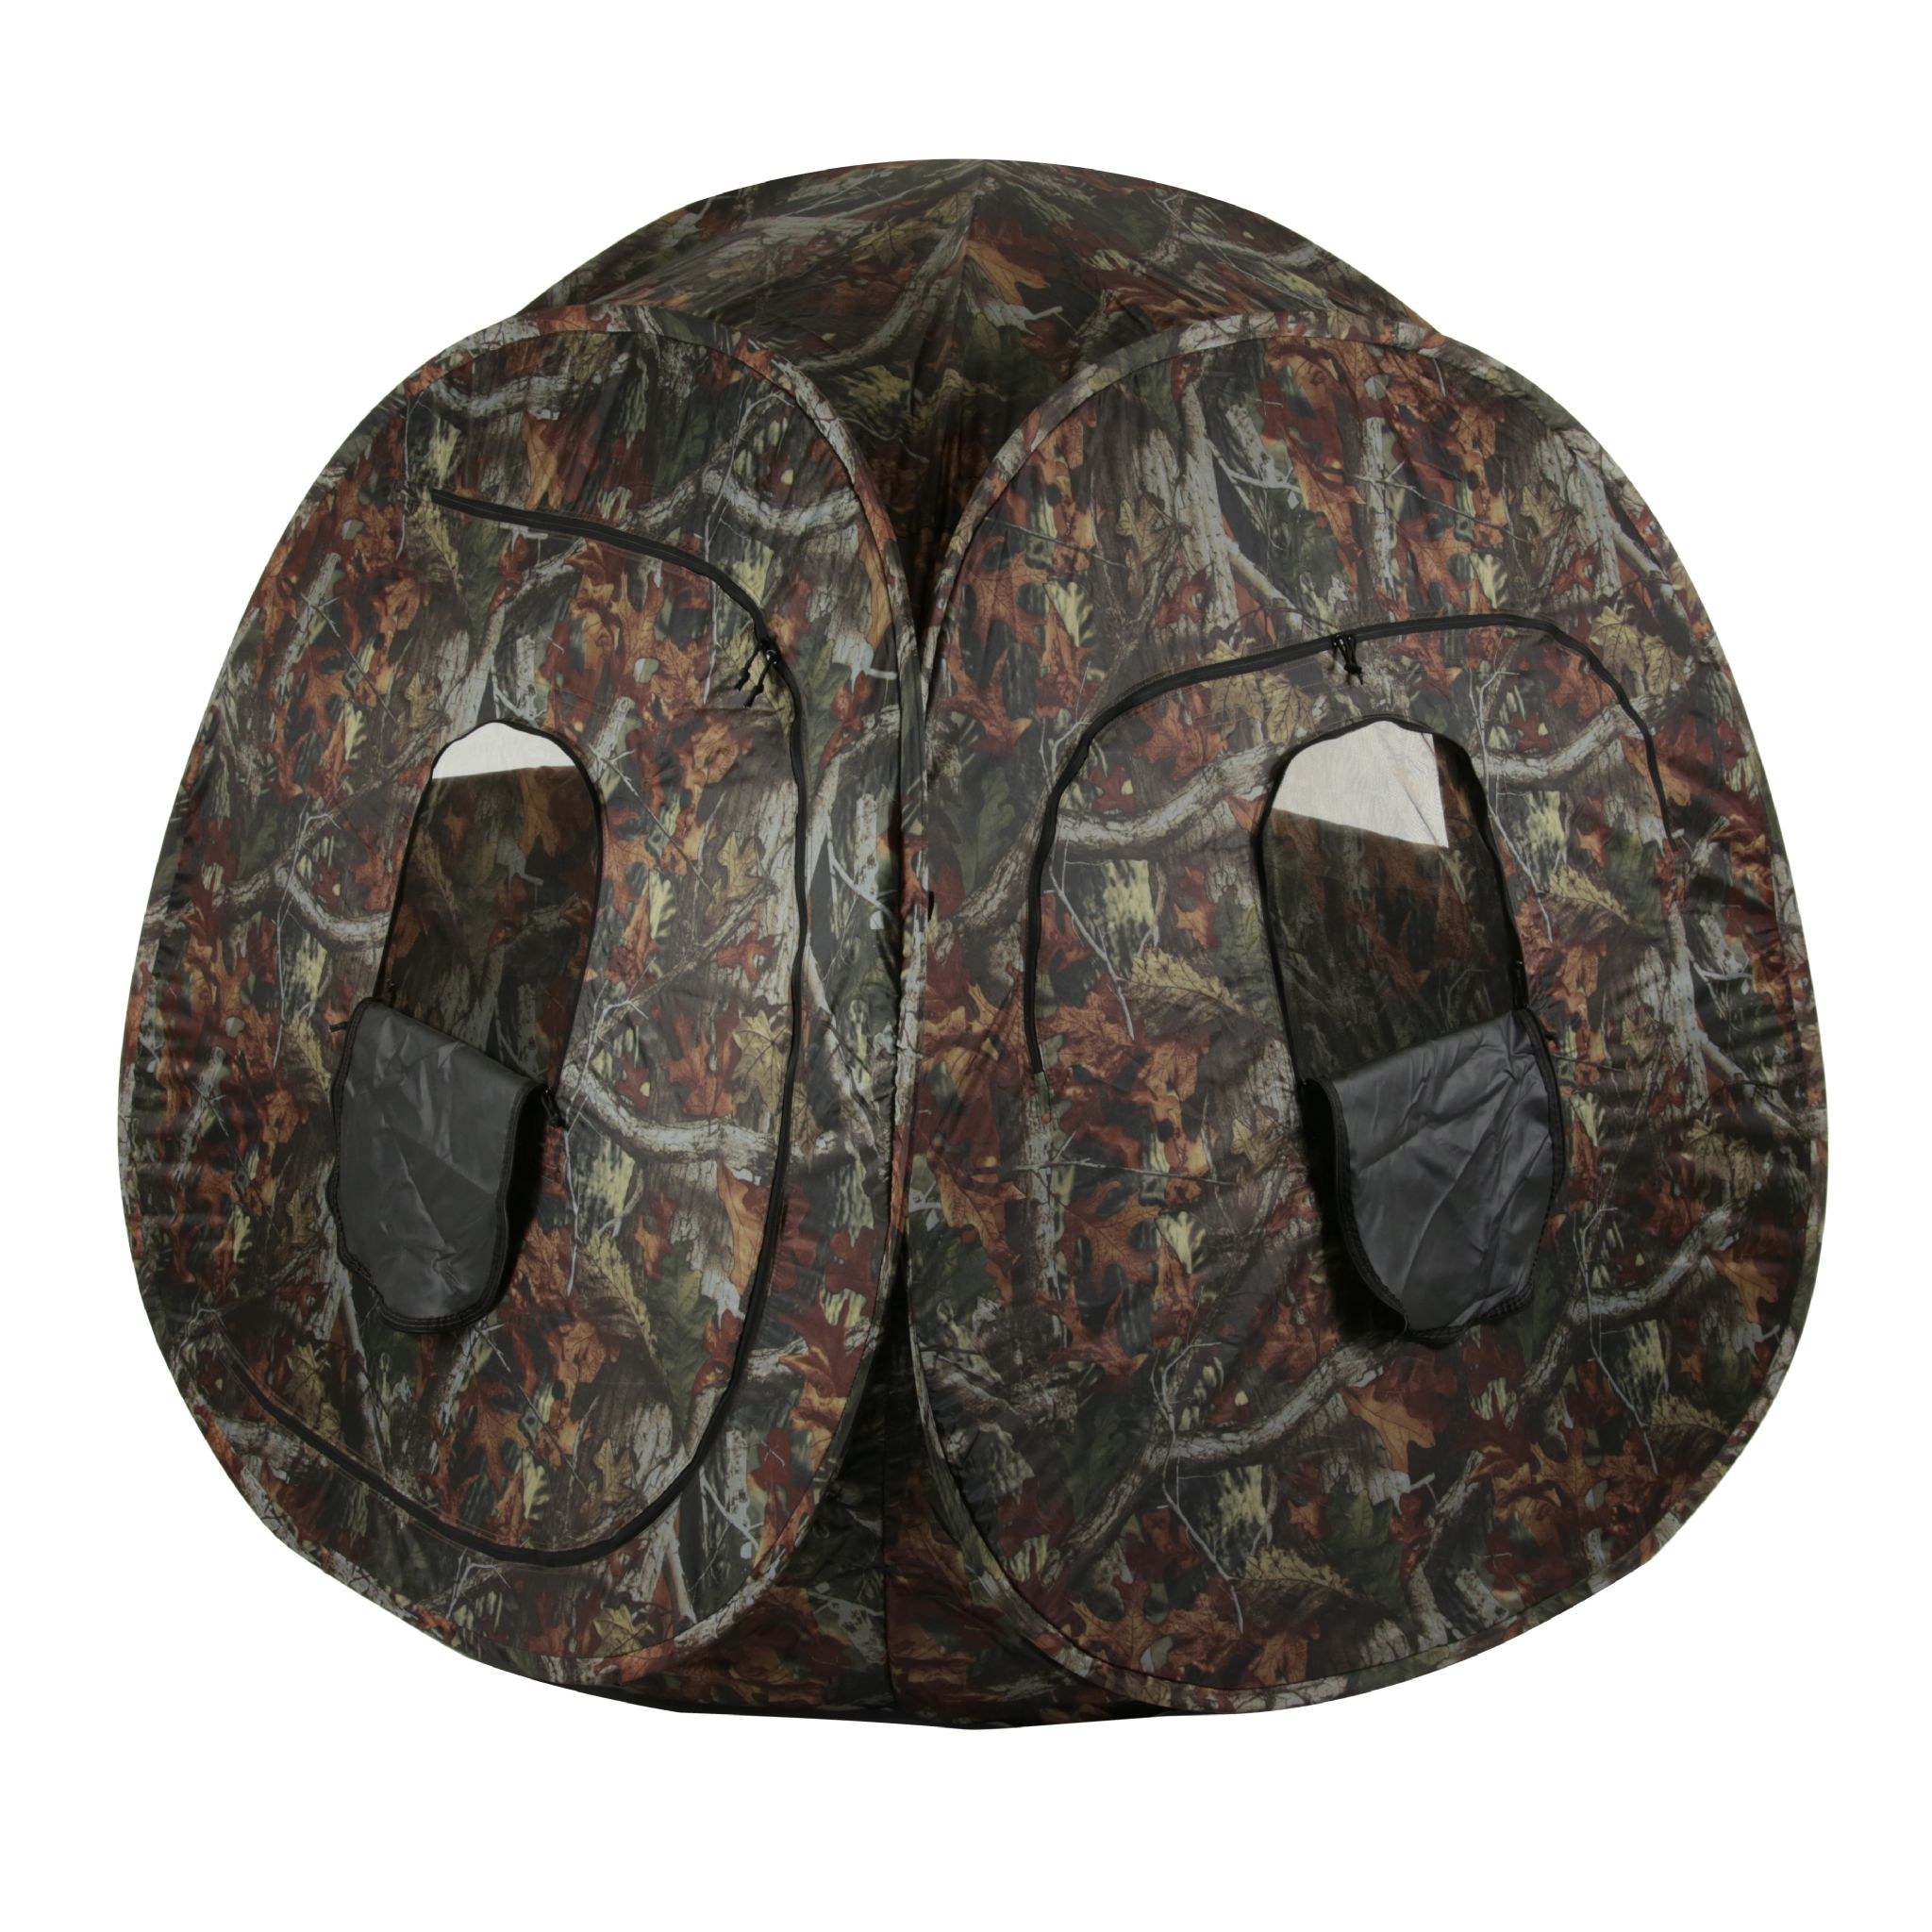 CAMO PROTECTOR 2 POP UP HIDE DECOYING PHOTOGRAPHY TENT